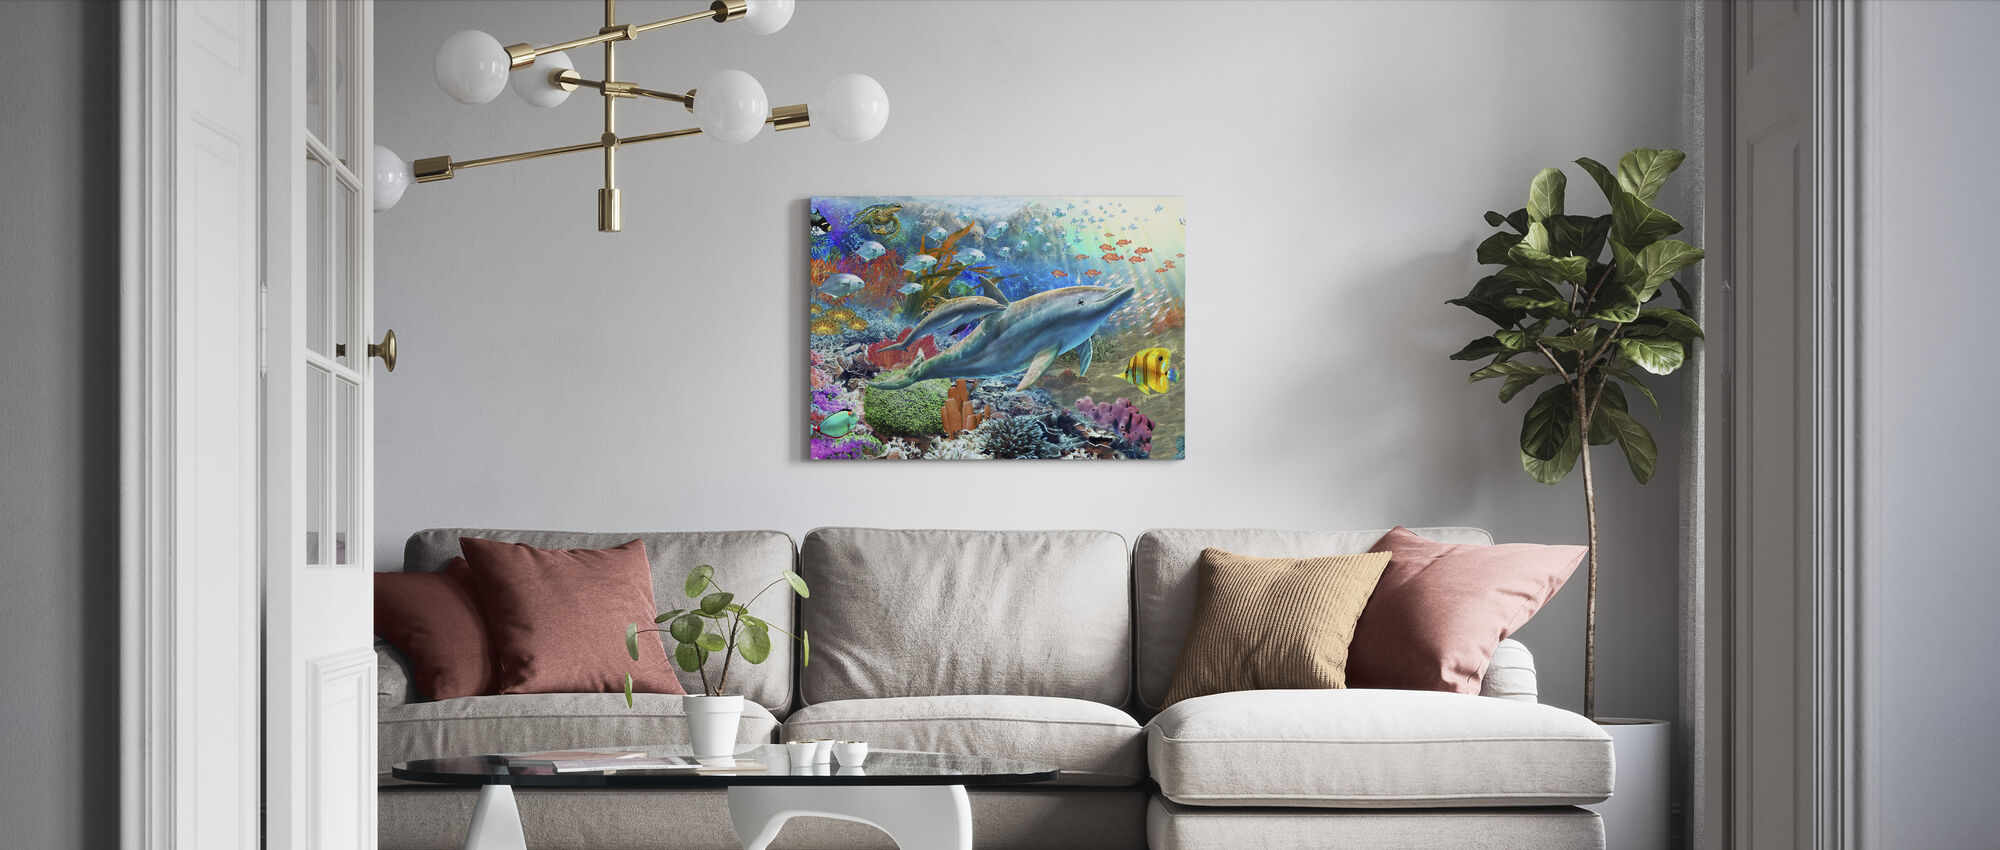 Land and Water Utopia I - Canvas print - Living Room